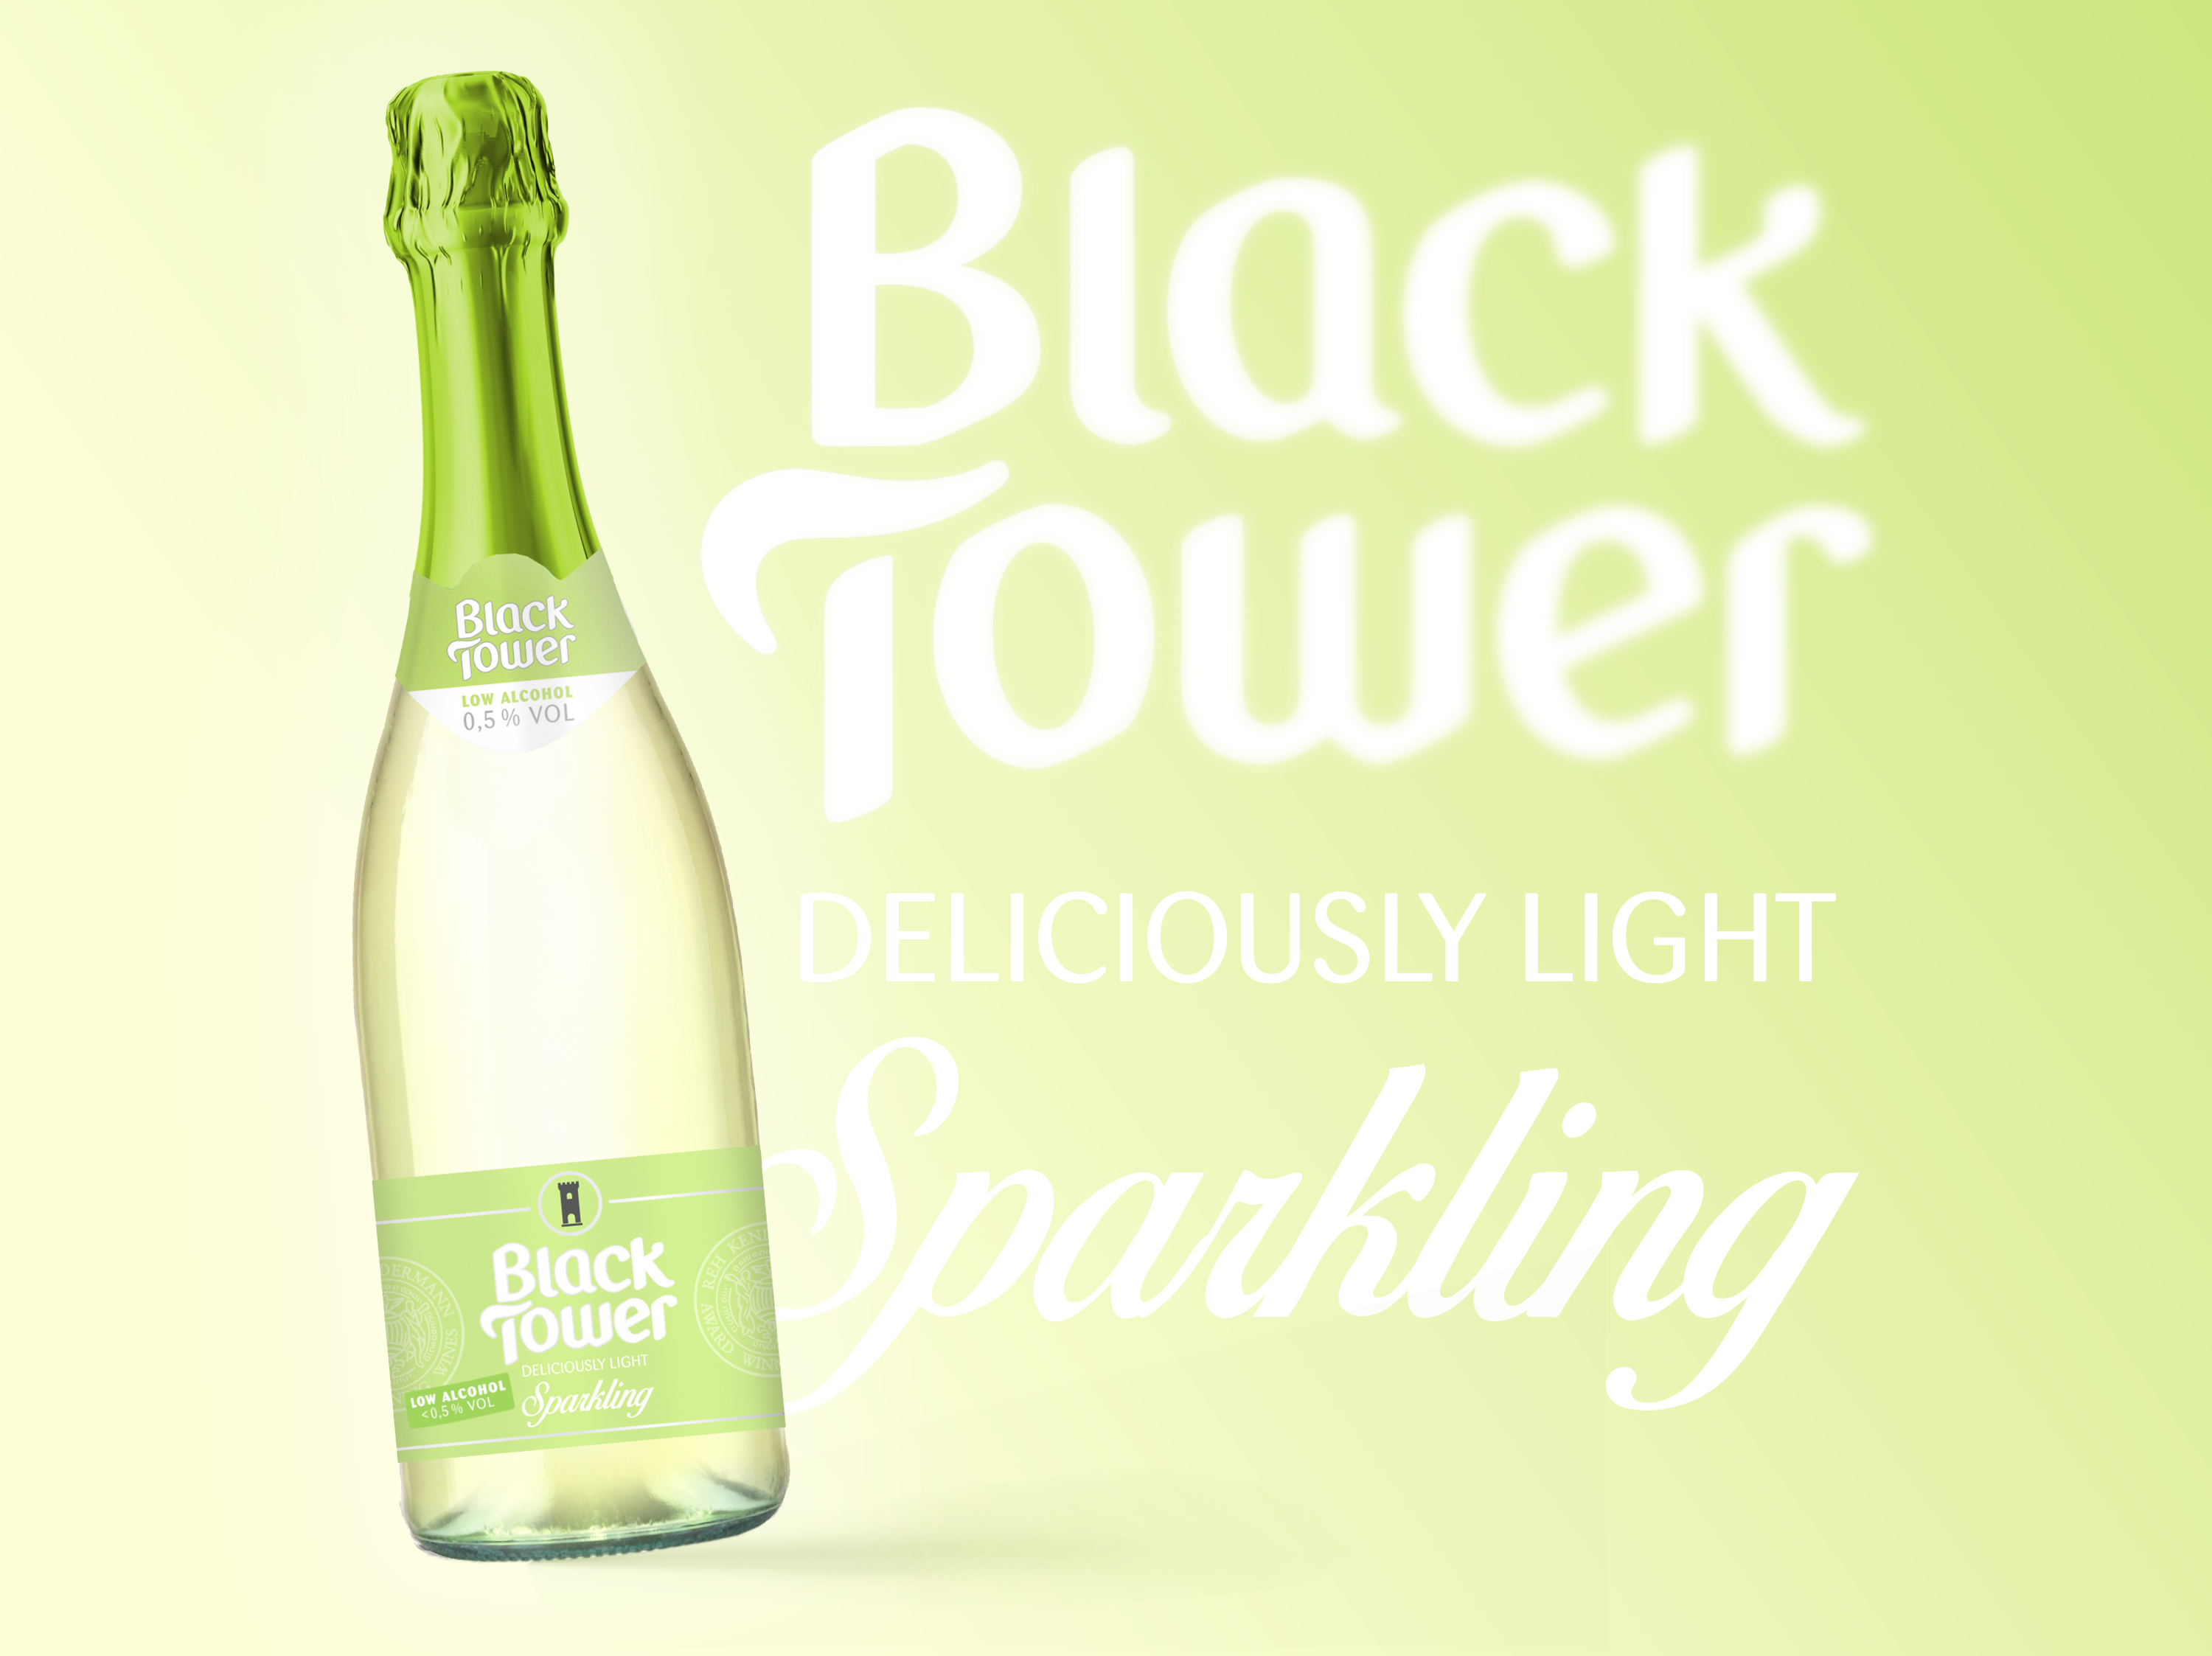 Eine Flasche Black Tower Low Alcohol: Deliciously Light Sparkling